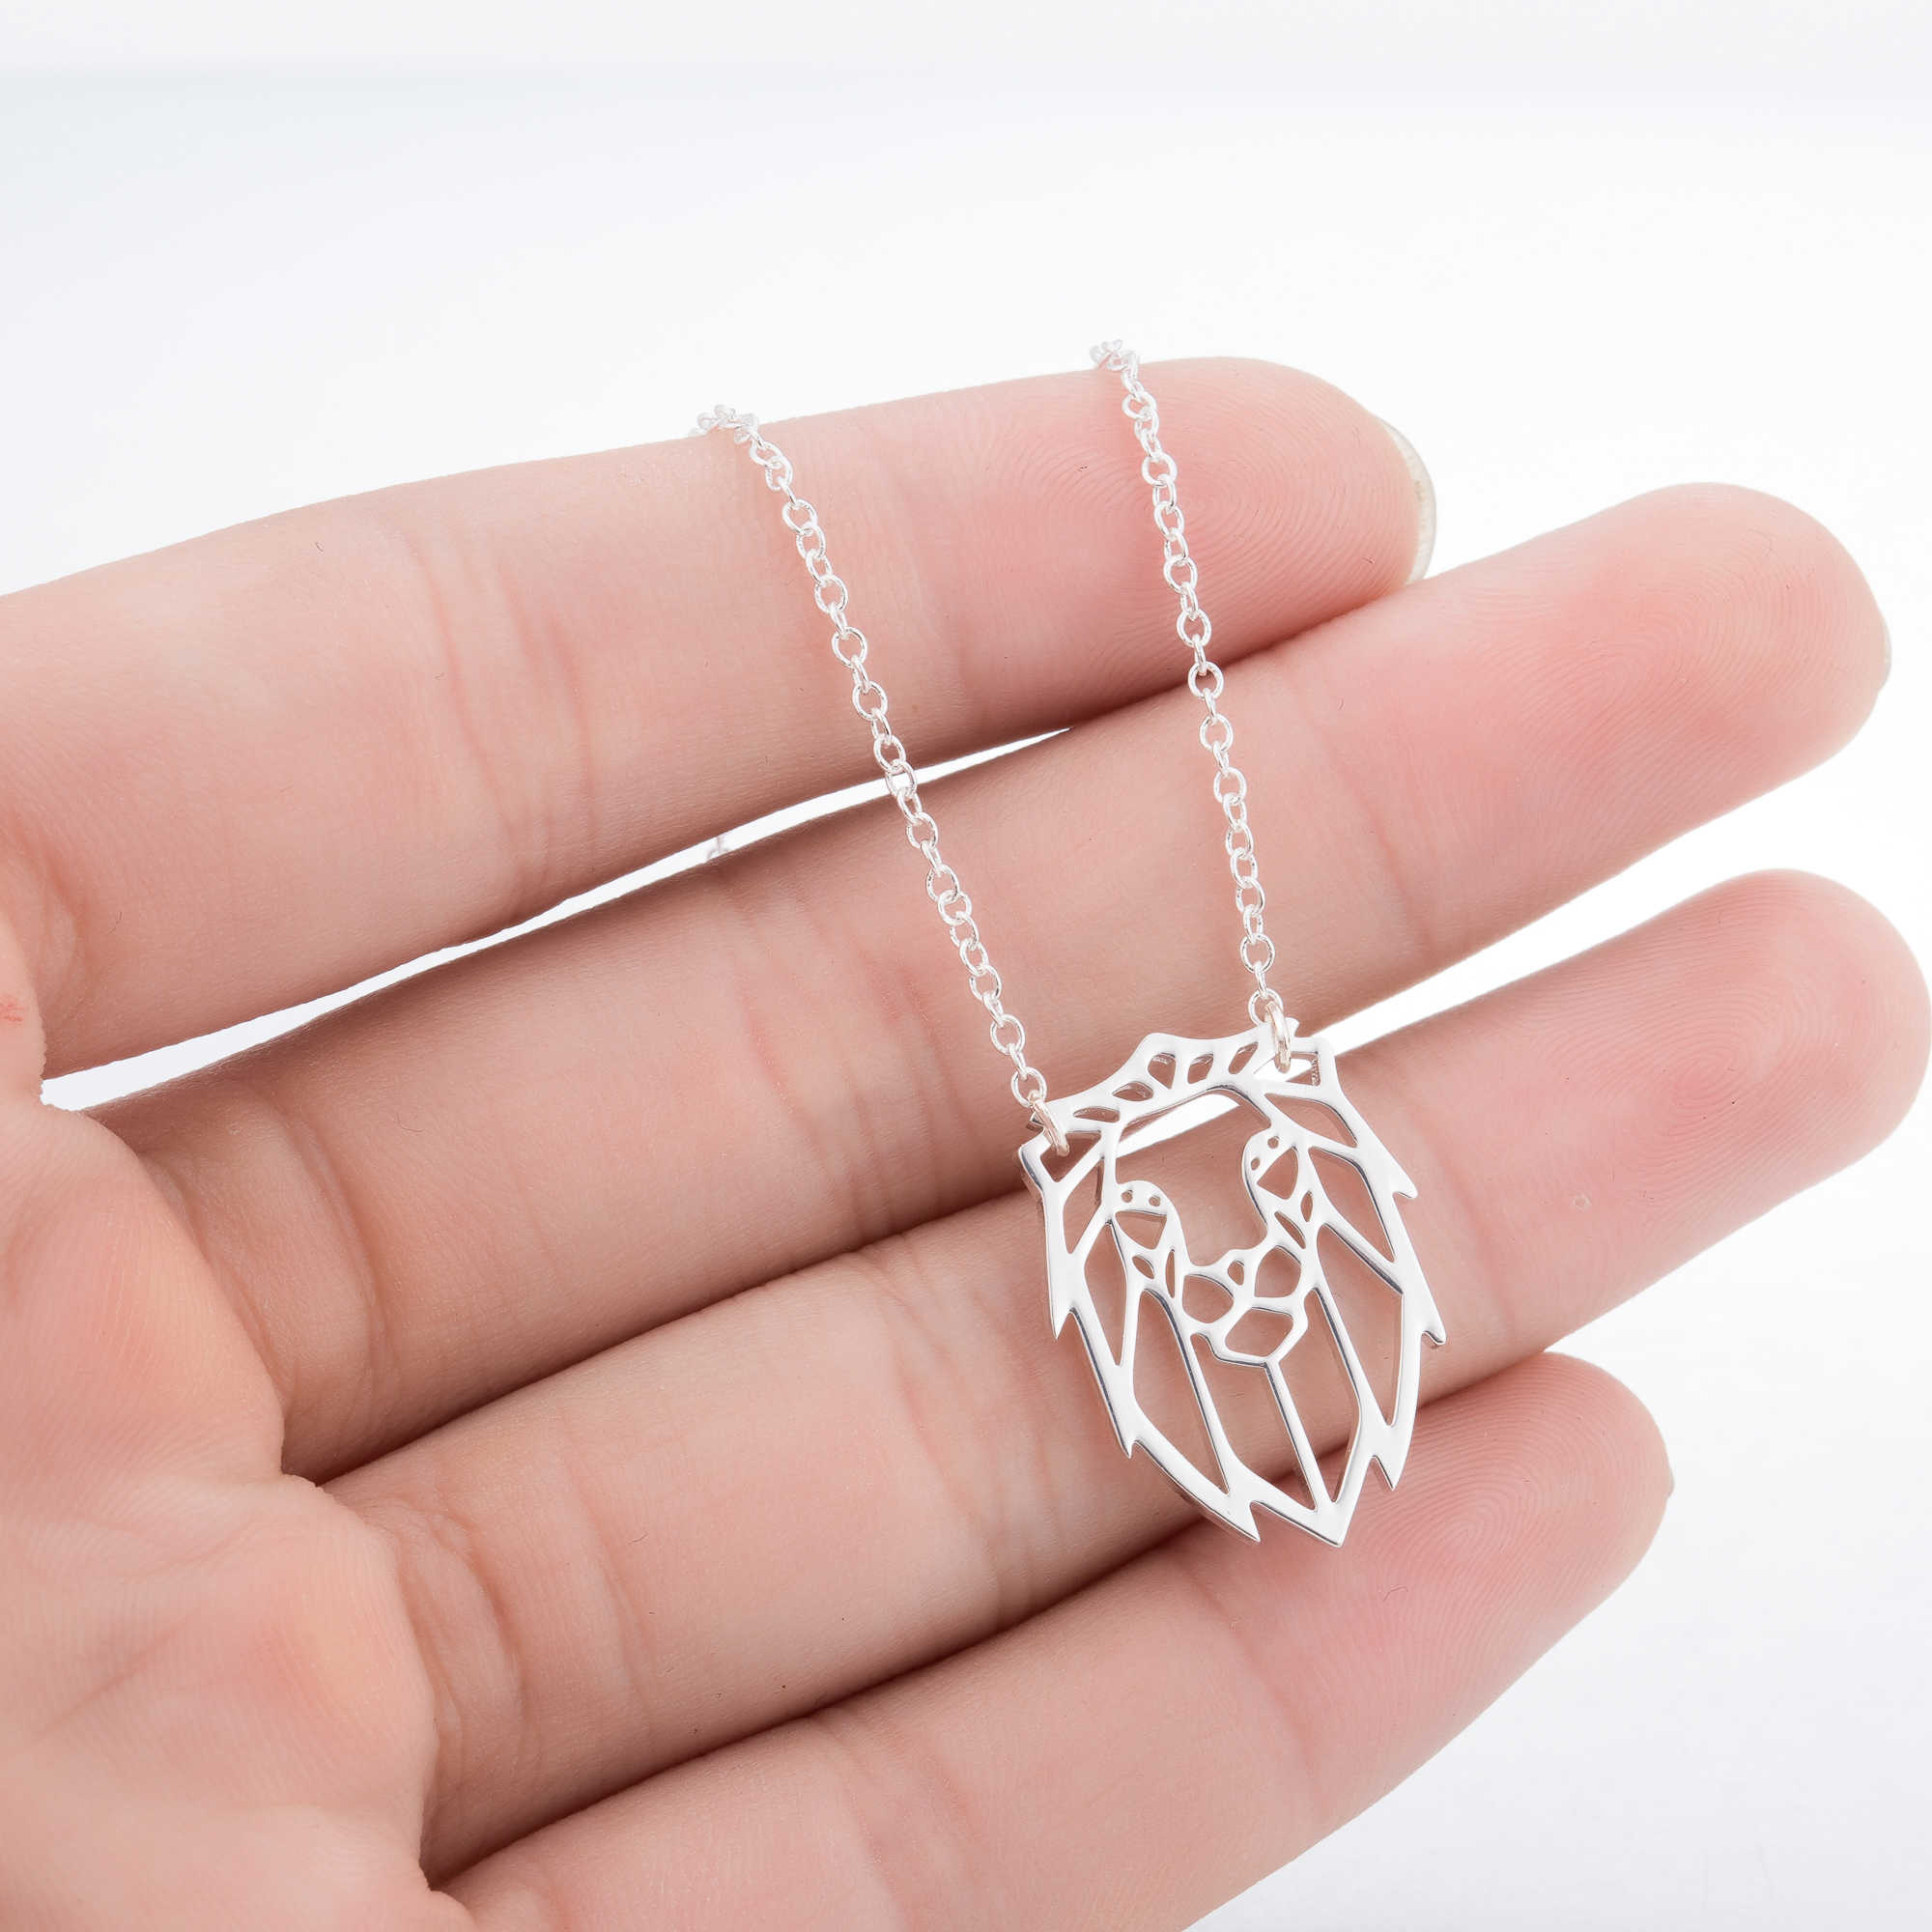 Cute Origami Lion Necklace Pendant for Women Stainless Steel Wild Animal The Lion King Collier Party Accessories